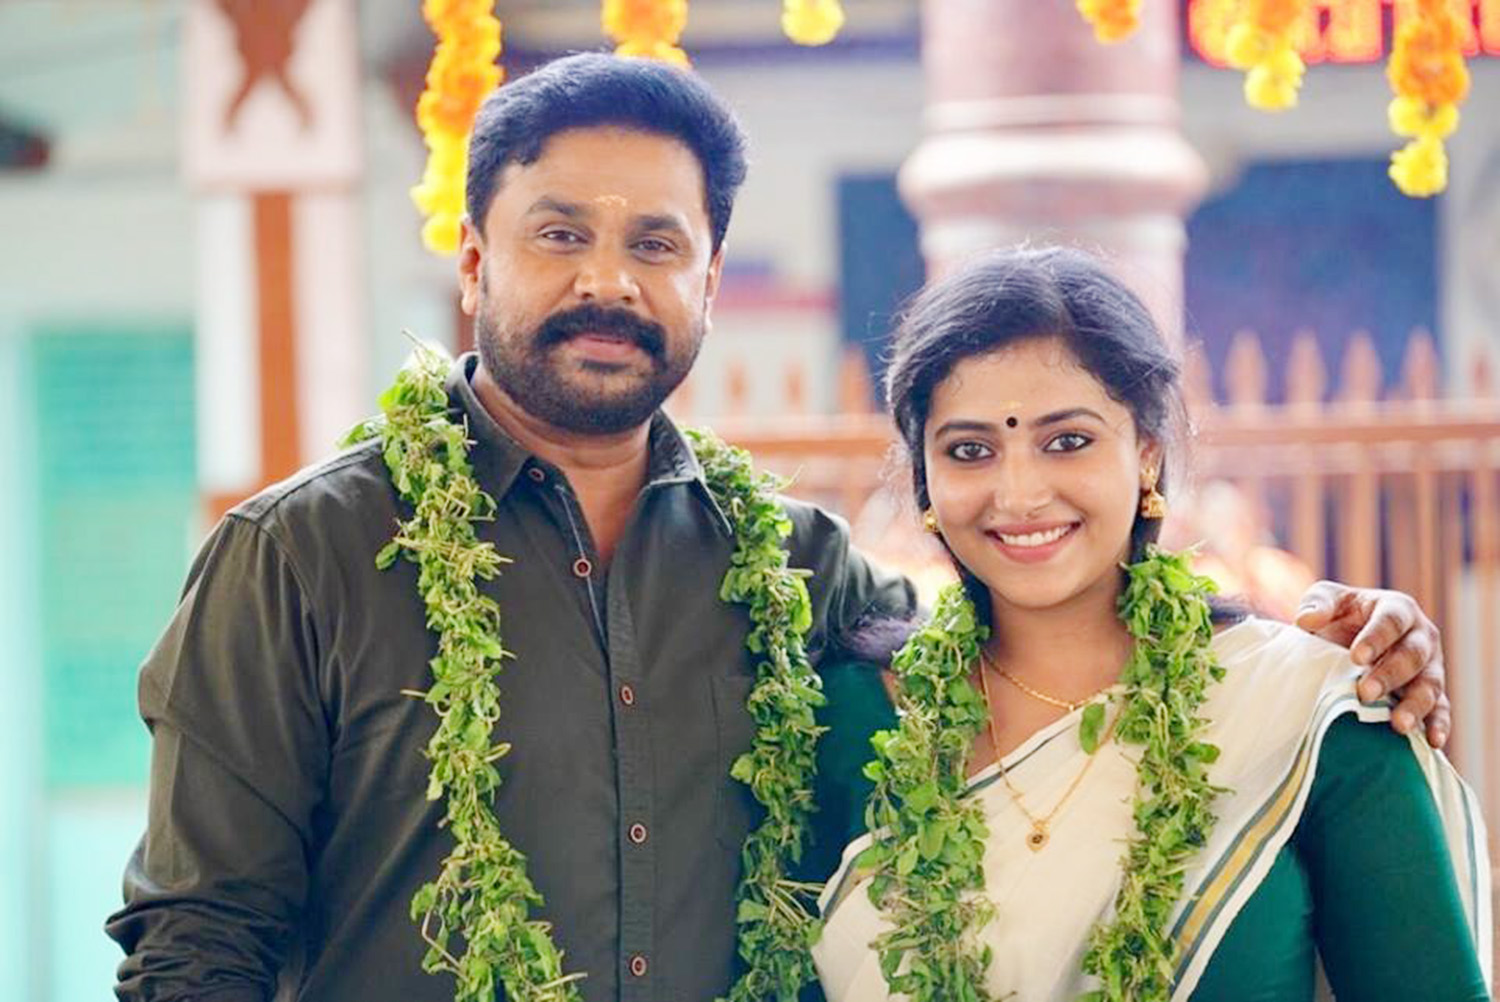 Shubharathri,Shubharathri movie,Shubharathri movie updates,Shubharathri movie stills,Shubharathri movie poster,actor dileep,Shubharathri location stills,anu sithara,dileep and anu sithara in Shubharathri,dileep's new movie,anu sithara's new movie,dileep and anu sithara Shubharathri movie photos,dileep in Shubharathri,anu sithara in Shubharathri,Shubharathri malayalam movie stills,Shubharathri new movie stills